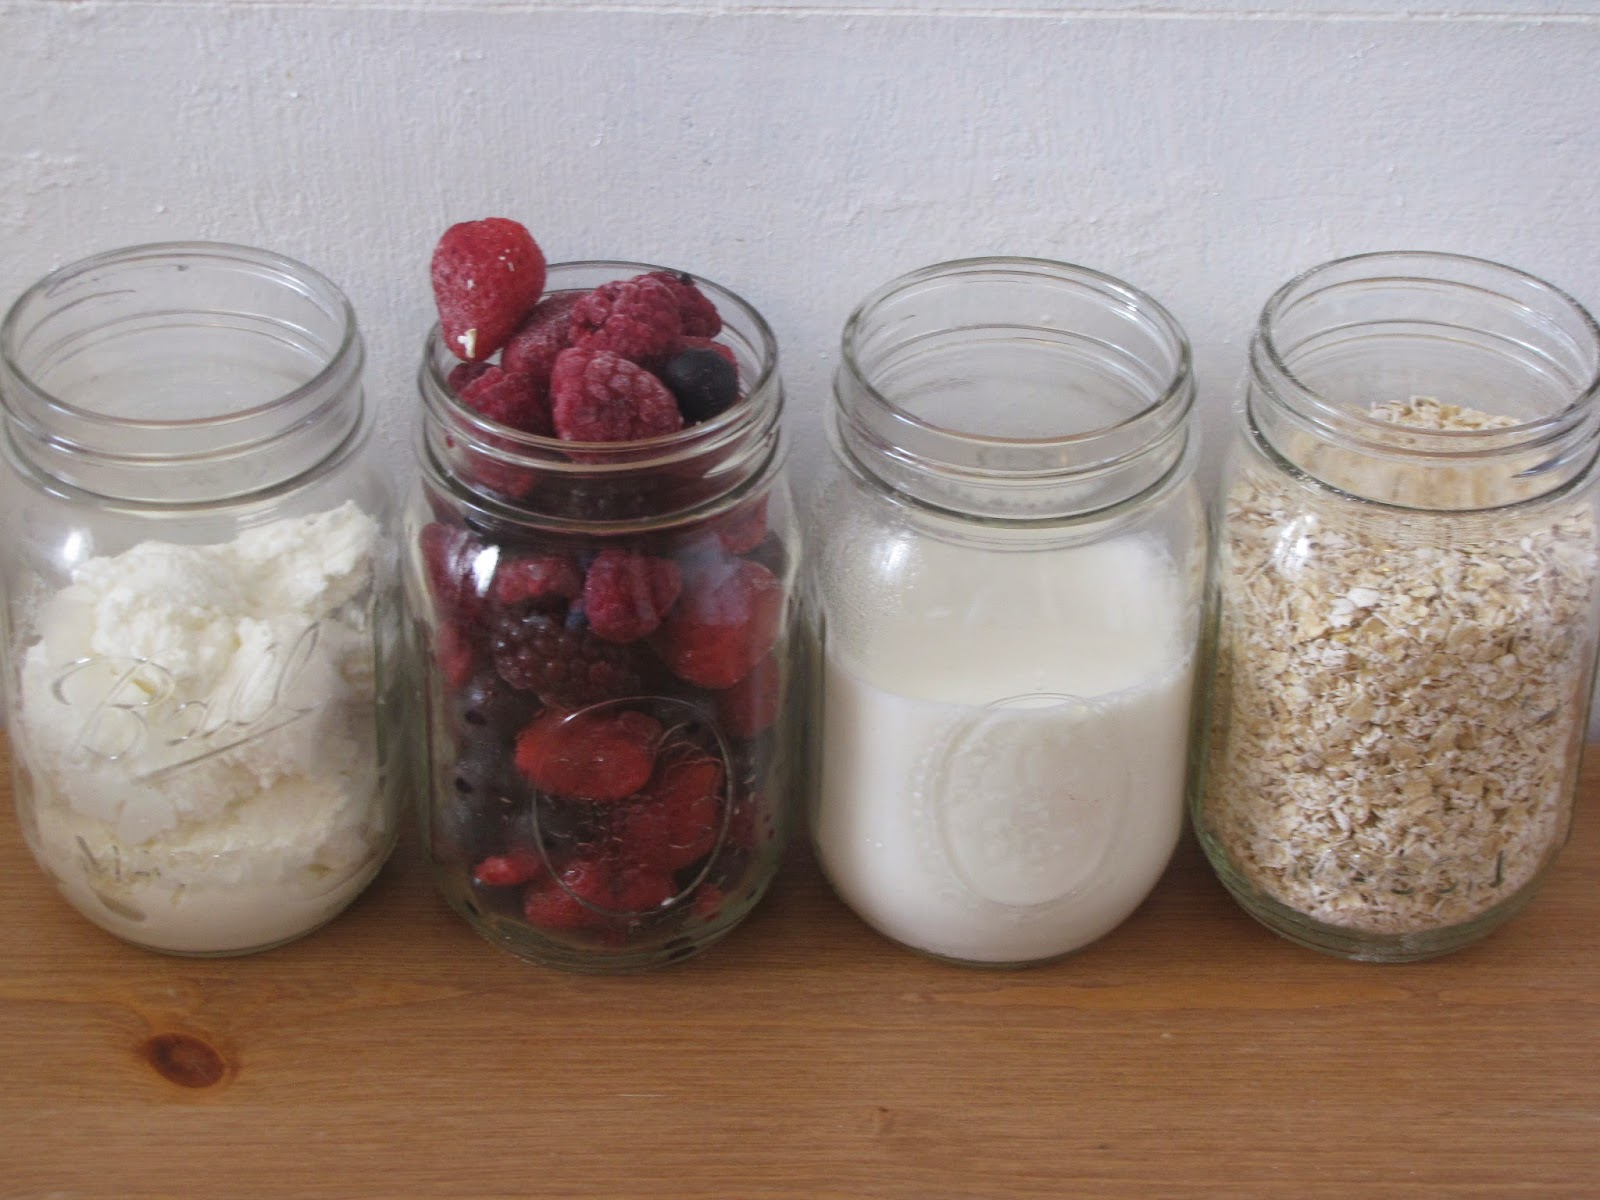 Ricotta, frozen berries, milk and oats measured out for pancakes in mason jars